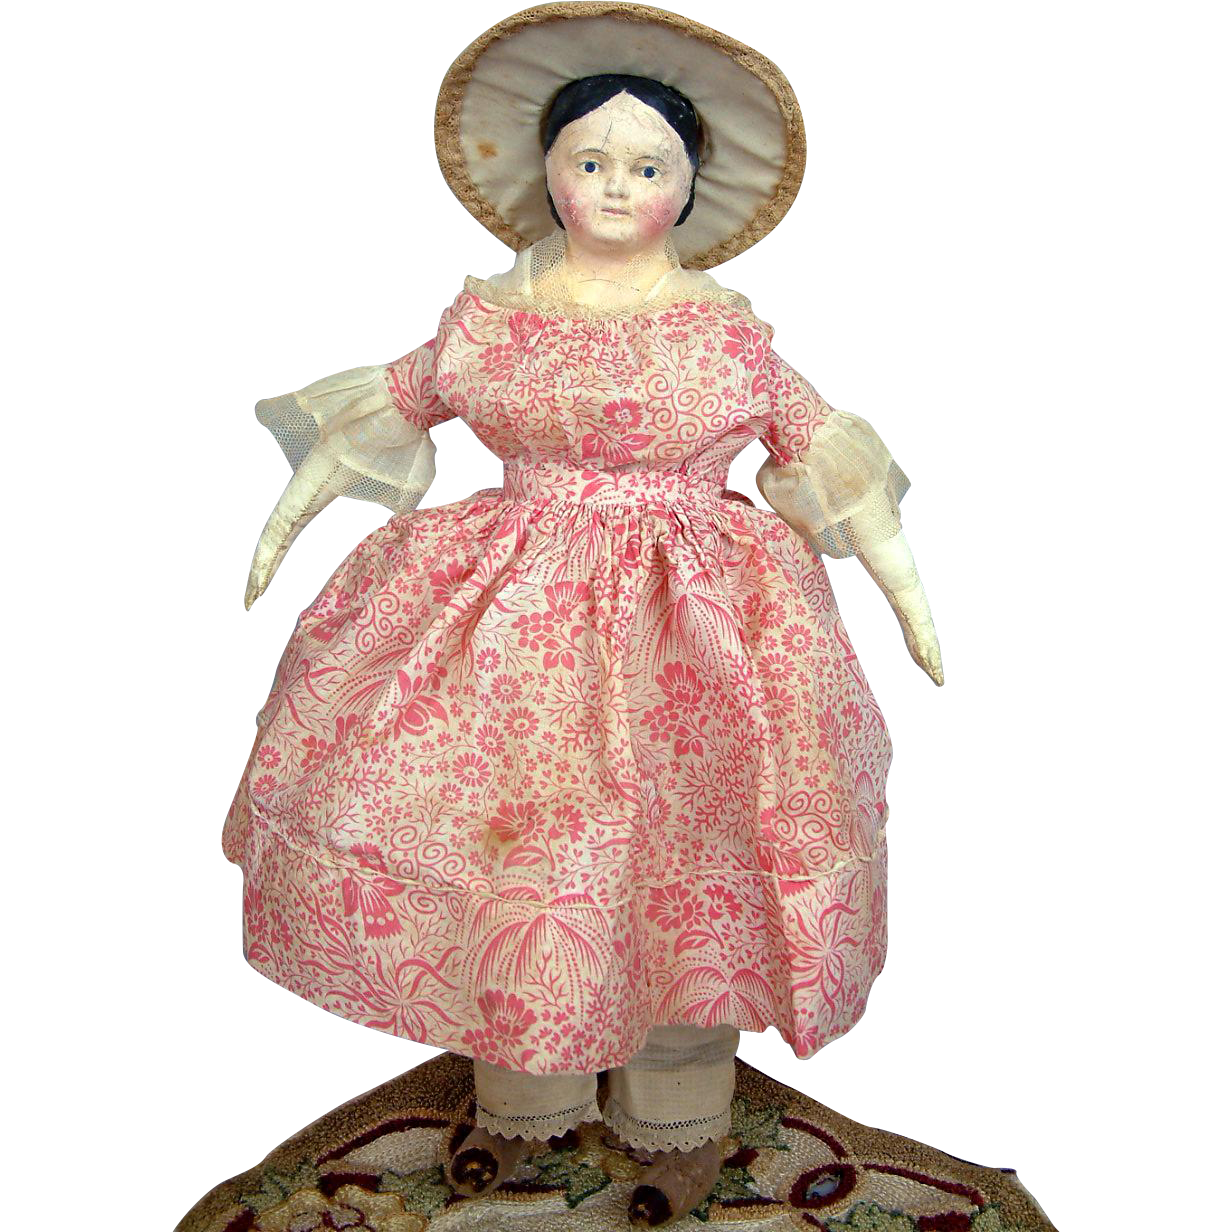 "13.5"" All Original Covered Wagon Antique German Papier Mache Doll C. 1850-60"